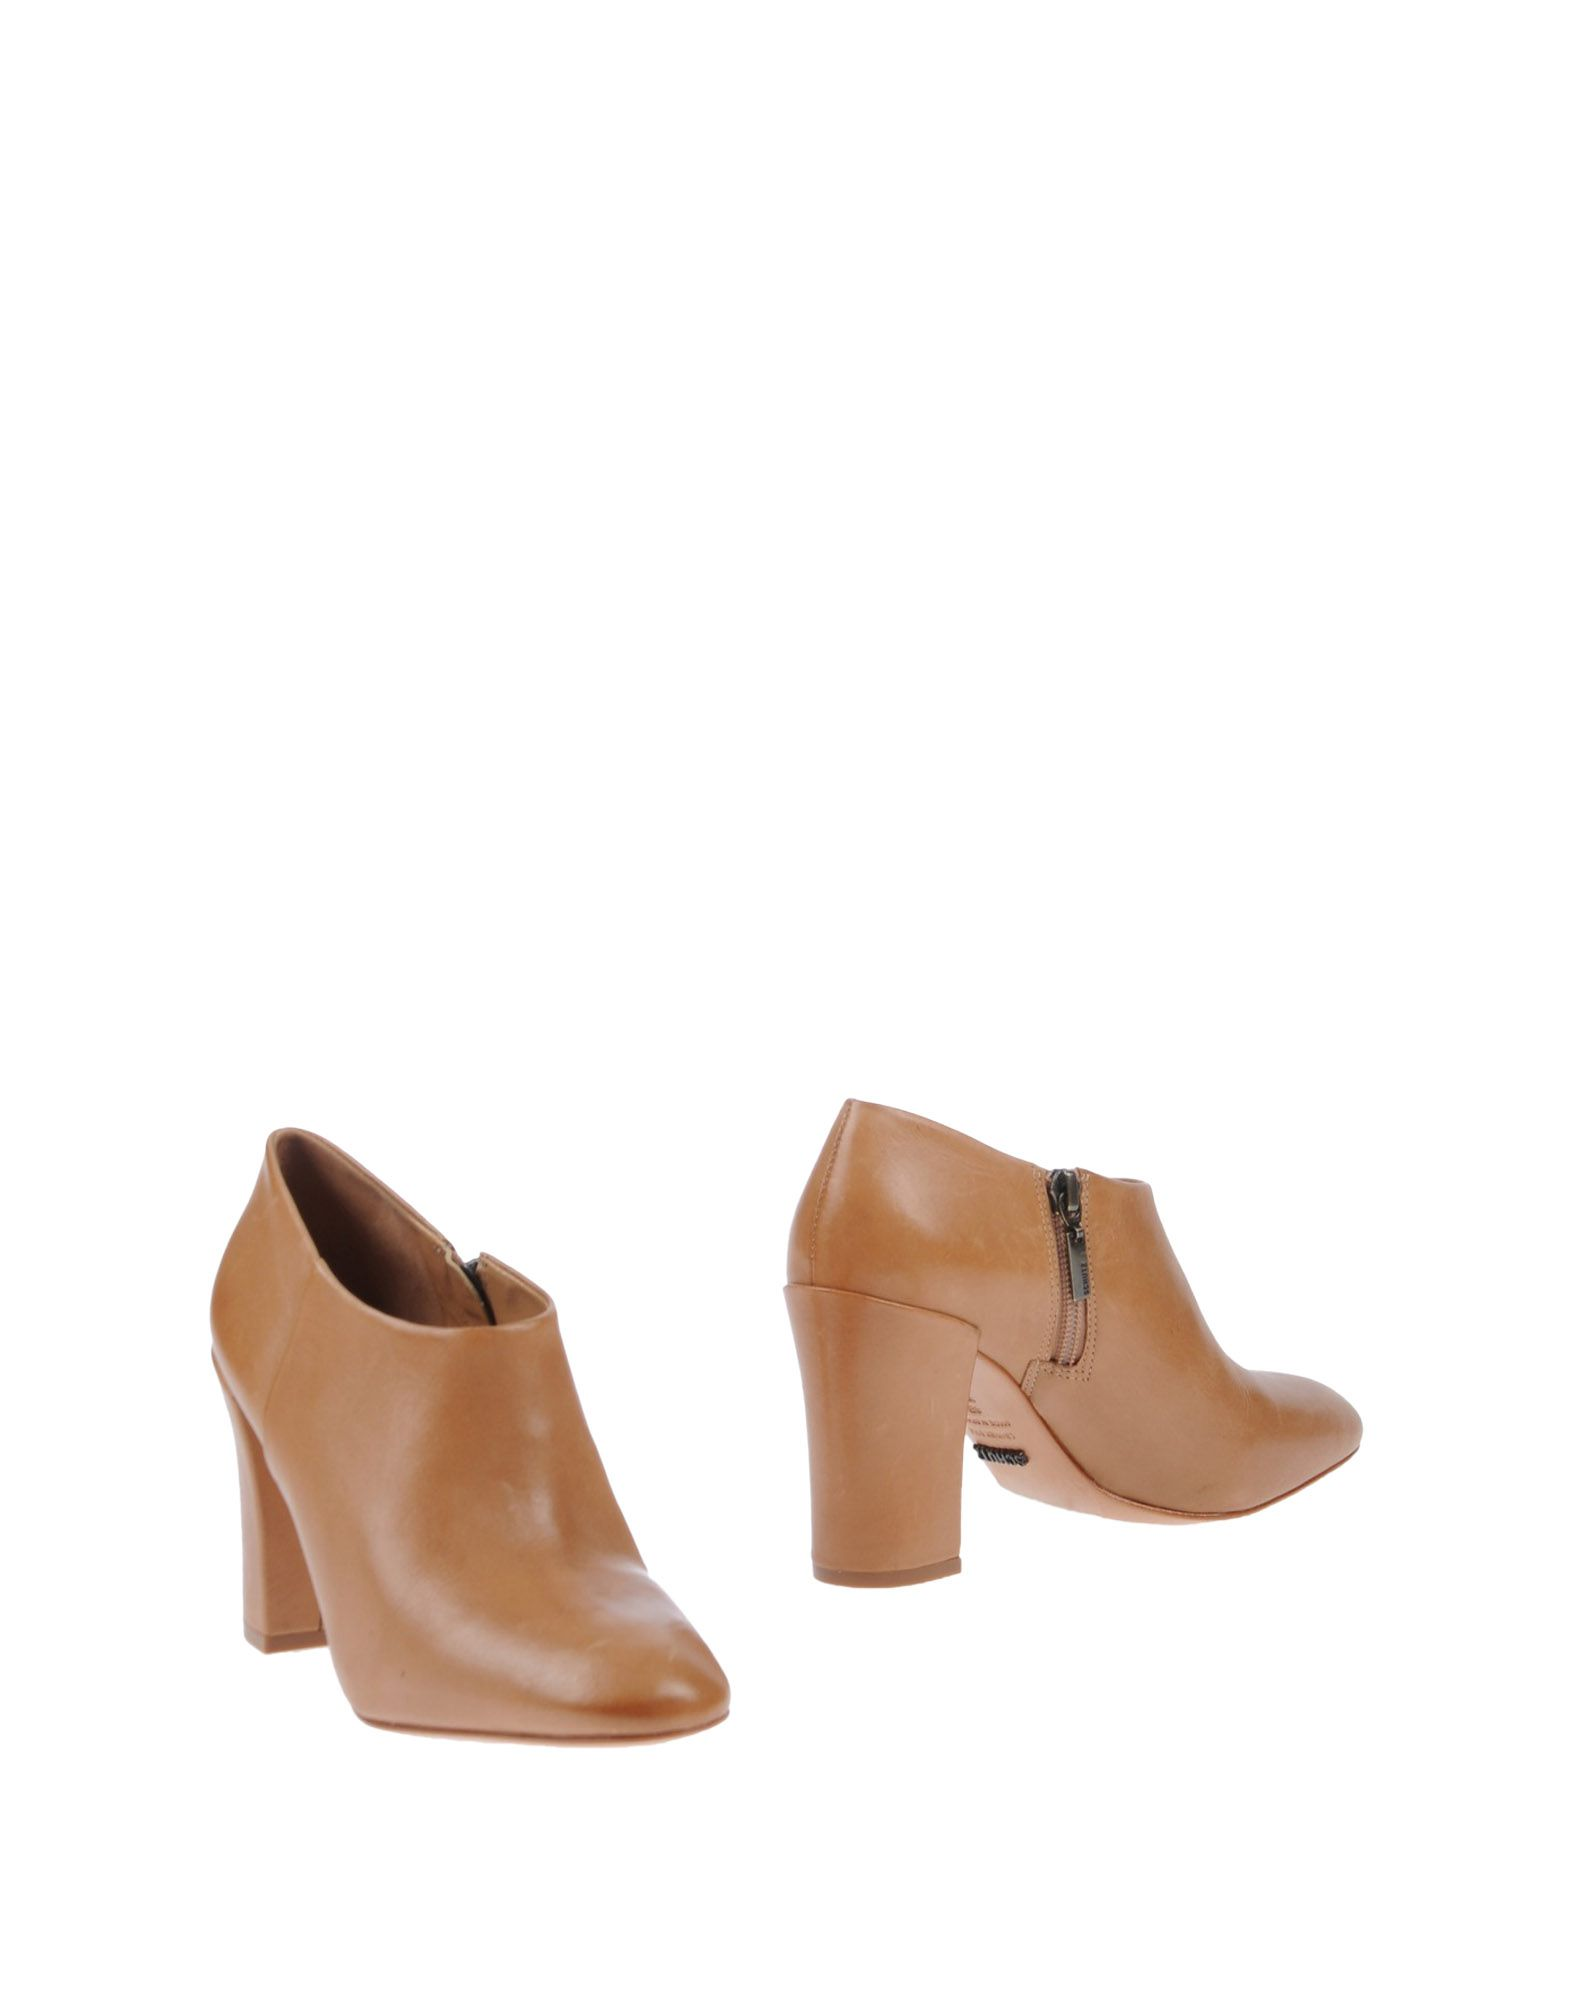 Schutz Ankle Boot Boots - Women Schutz Ankle Boots Boot online on  Australia - 11480881EB 0951be